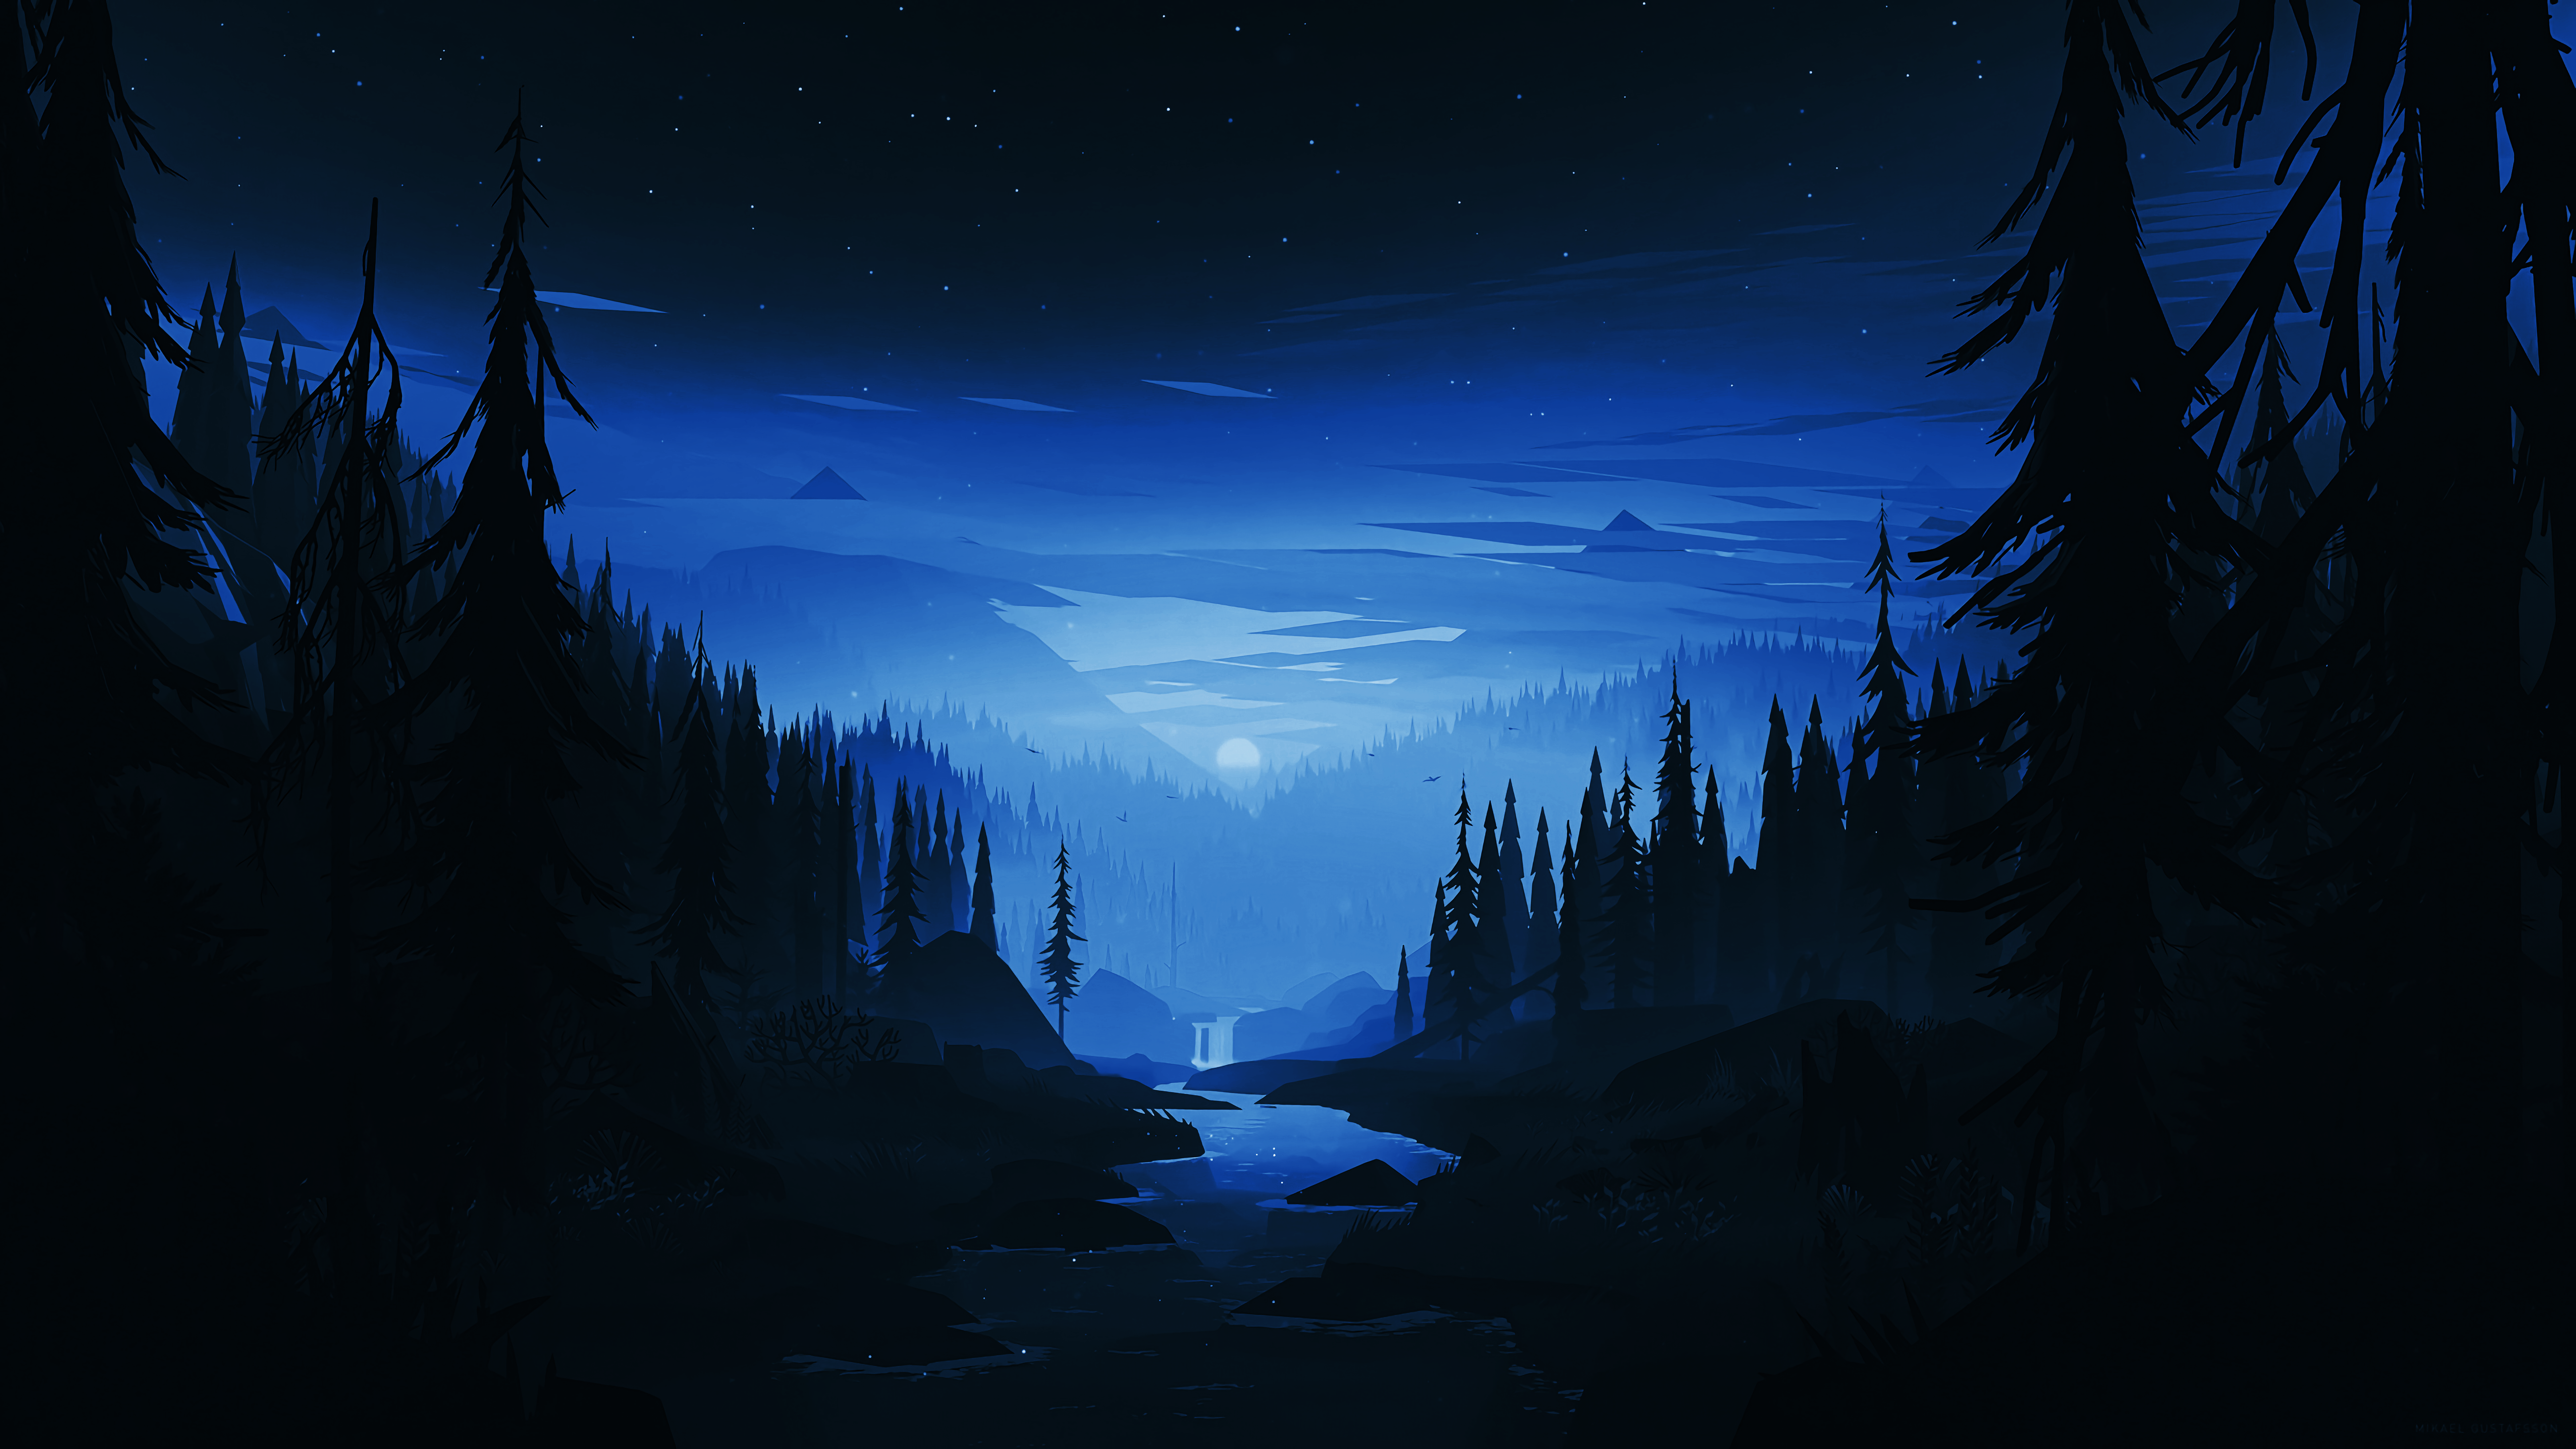 Winter Themed Version Of That One Wallpaper 7680x4320 Edit Made By U Hyperactive1duk Dark Landscape Landscape Wallpaper Minimal Wallpaper